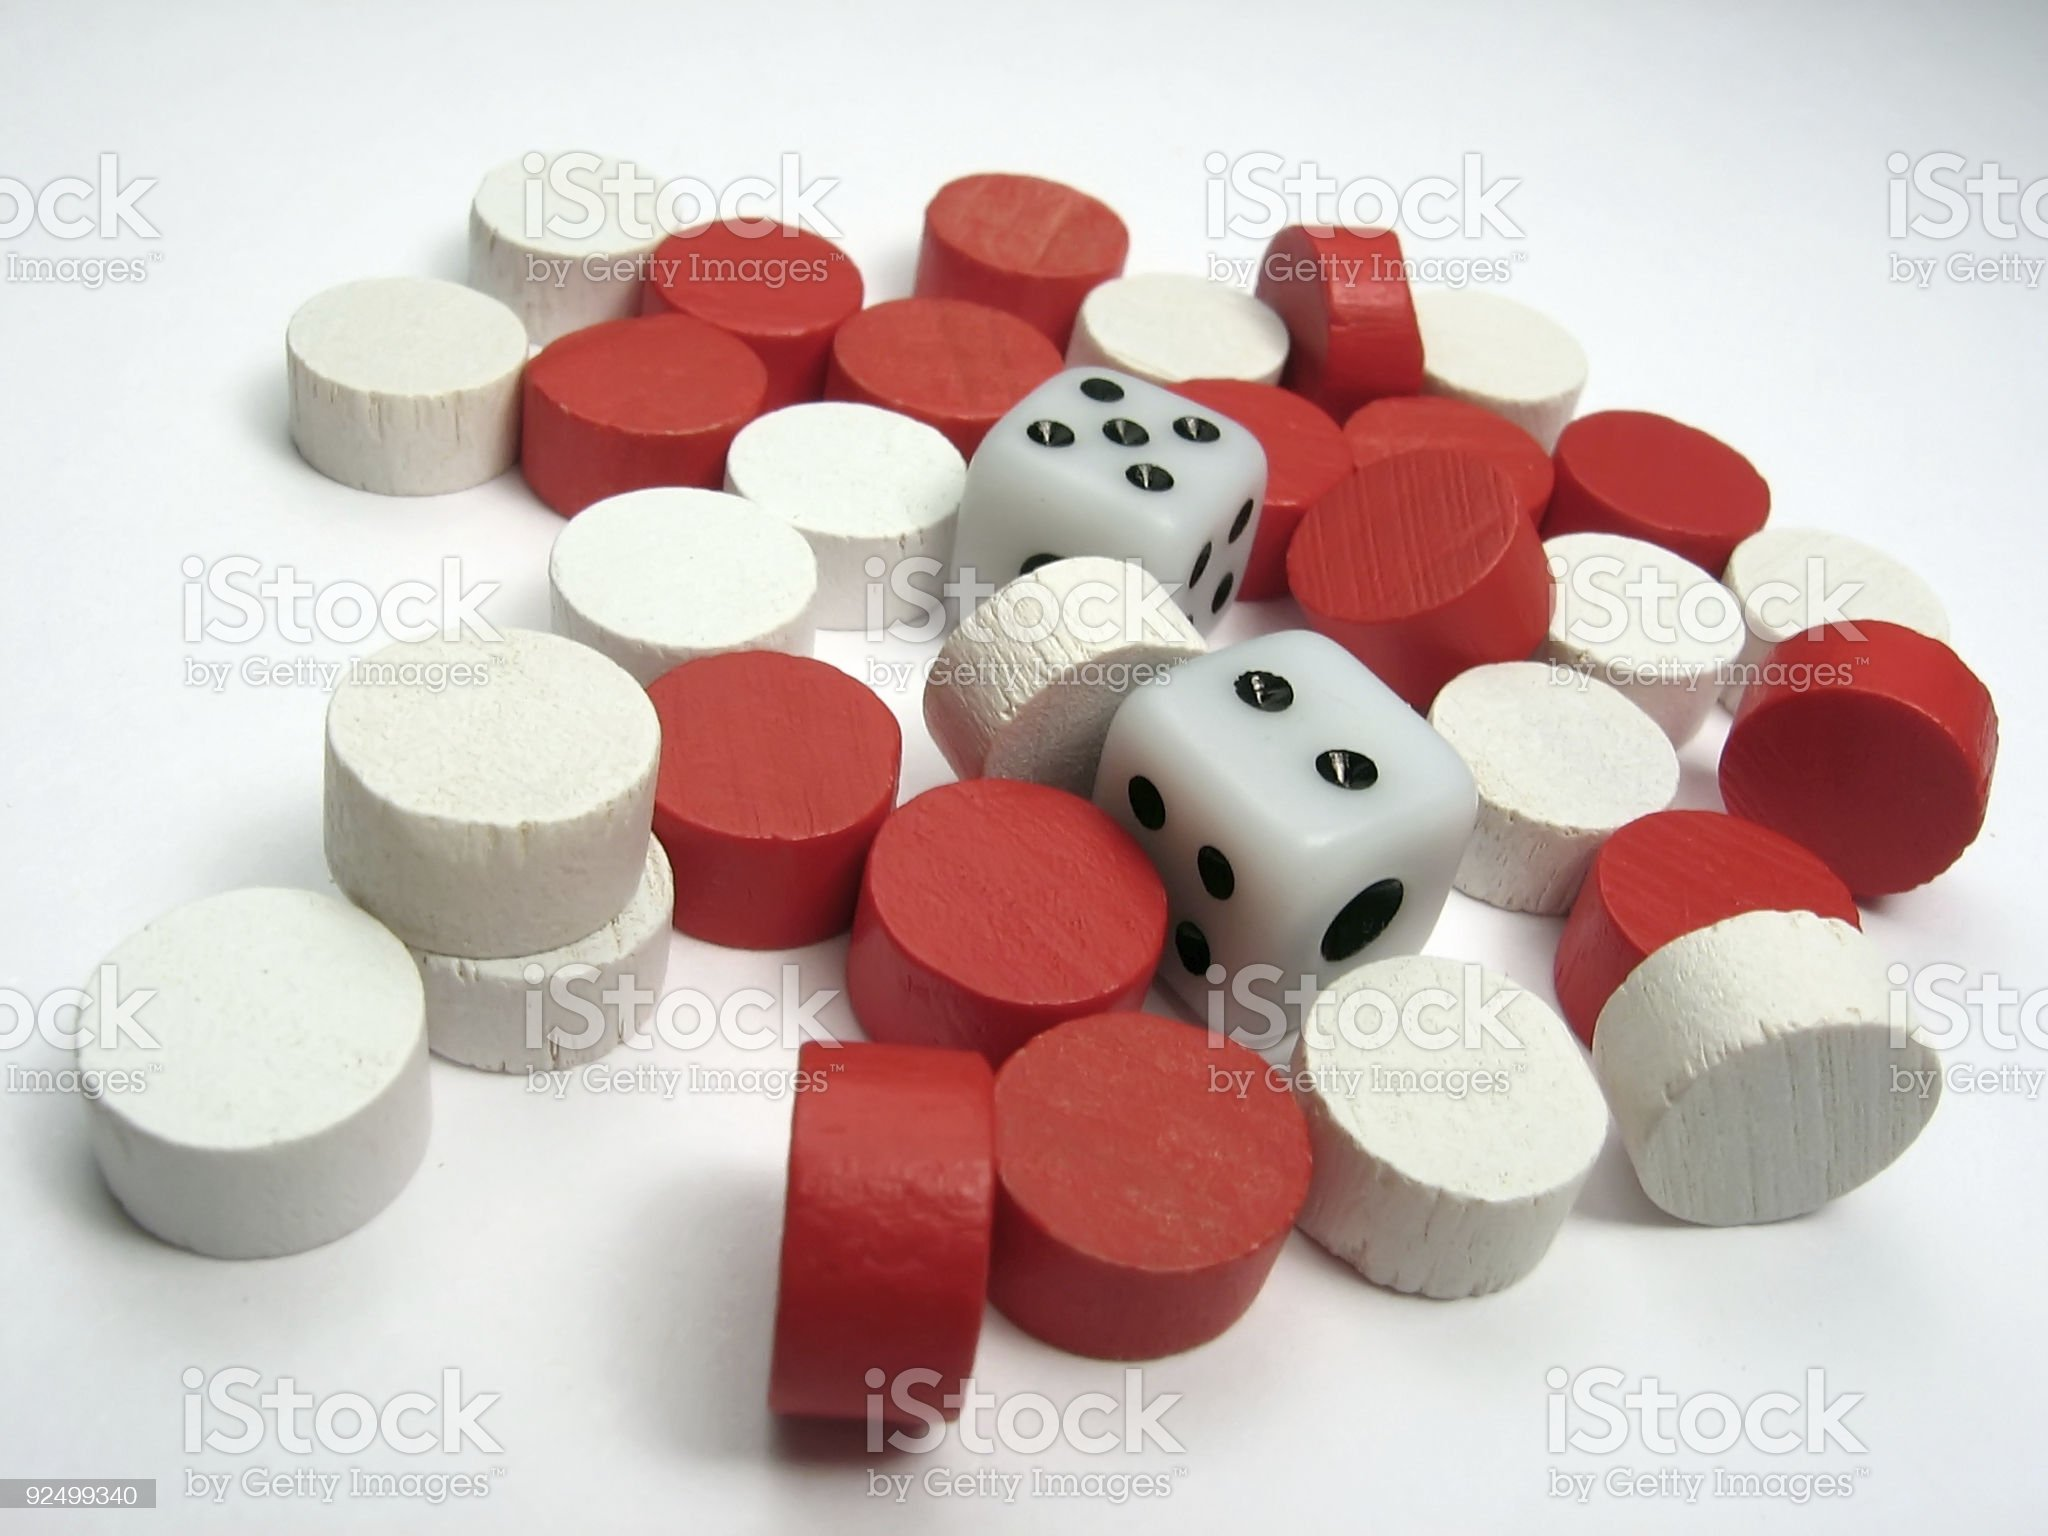 Dice with reds and whites royalty-free stock photo